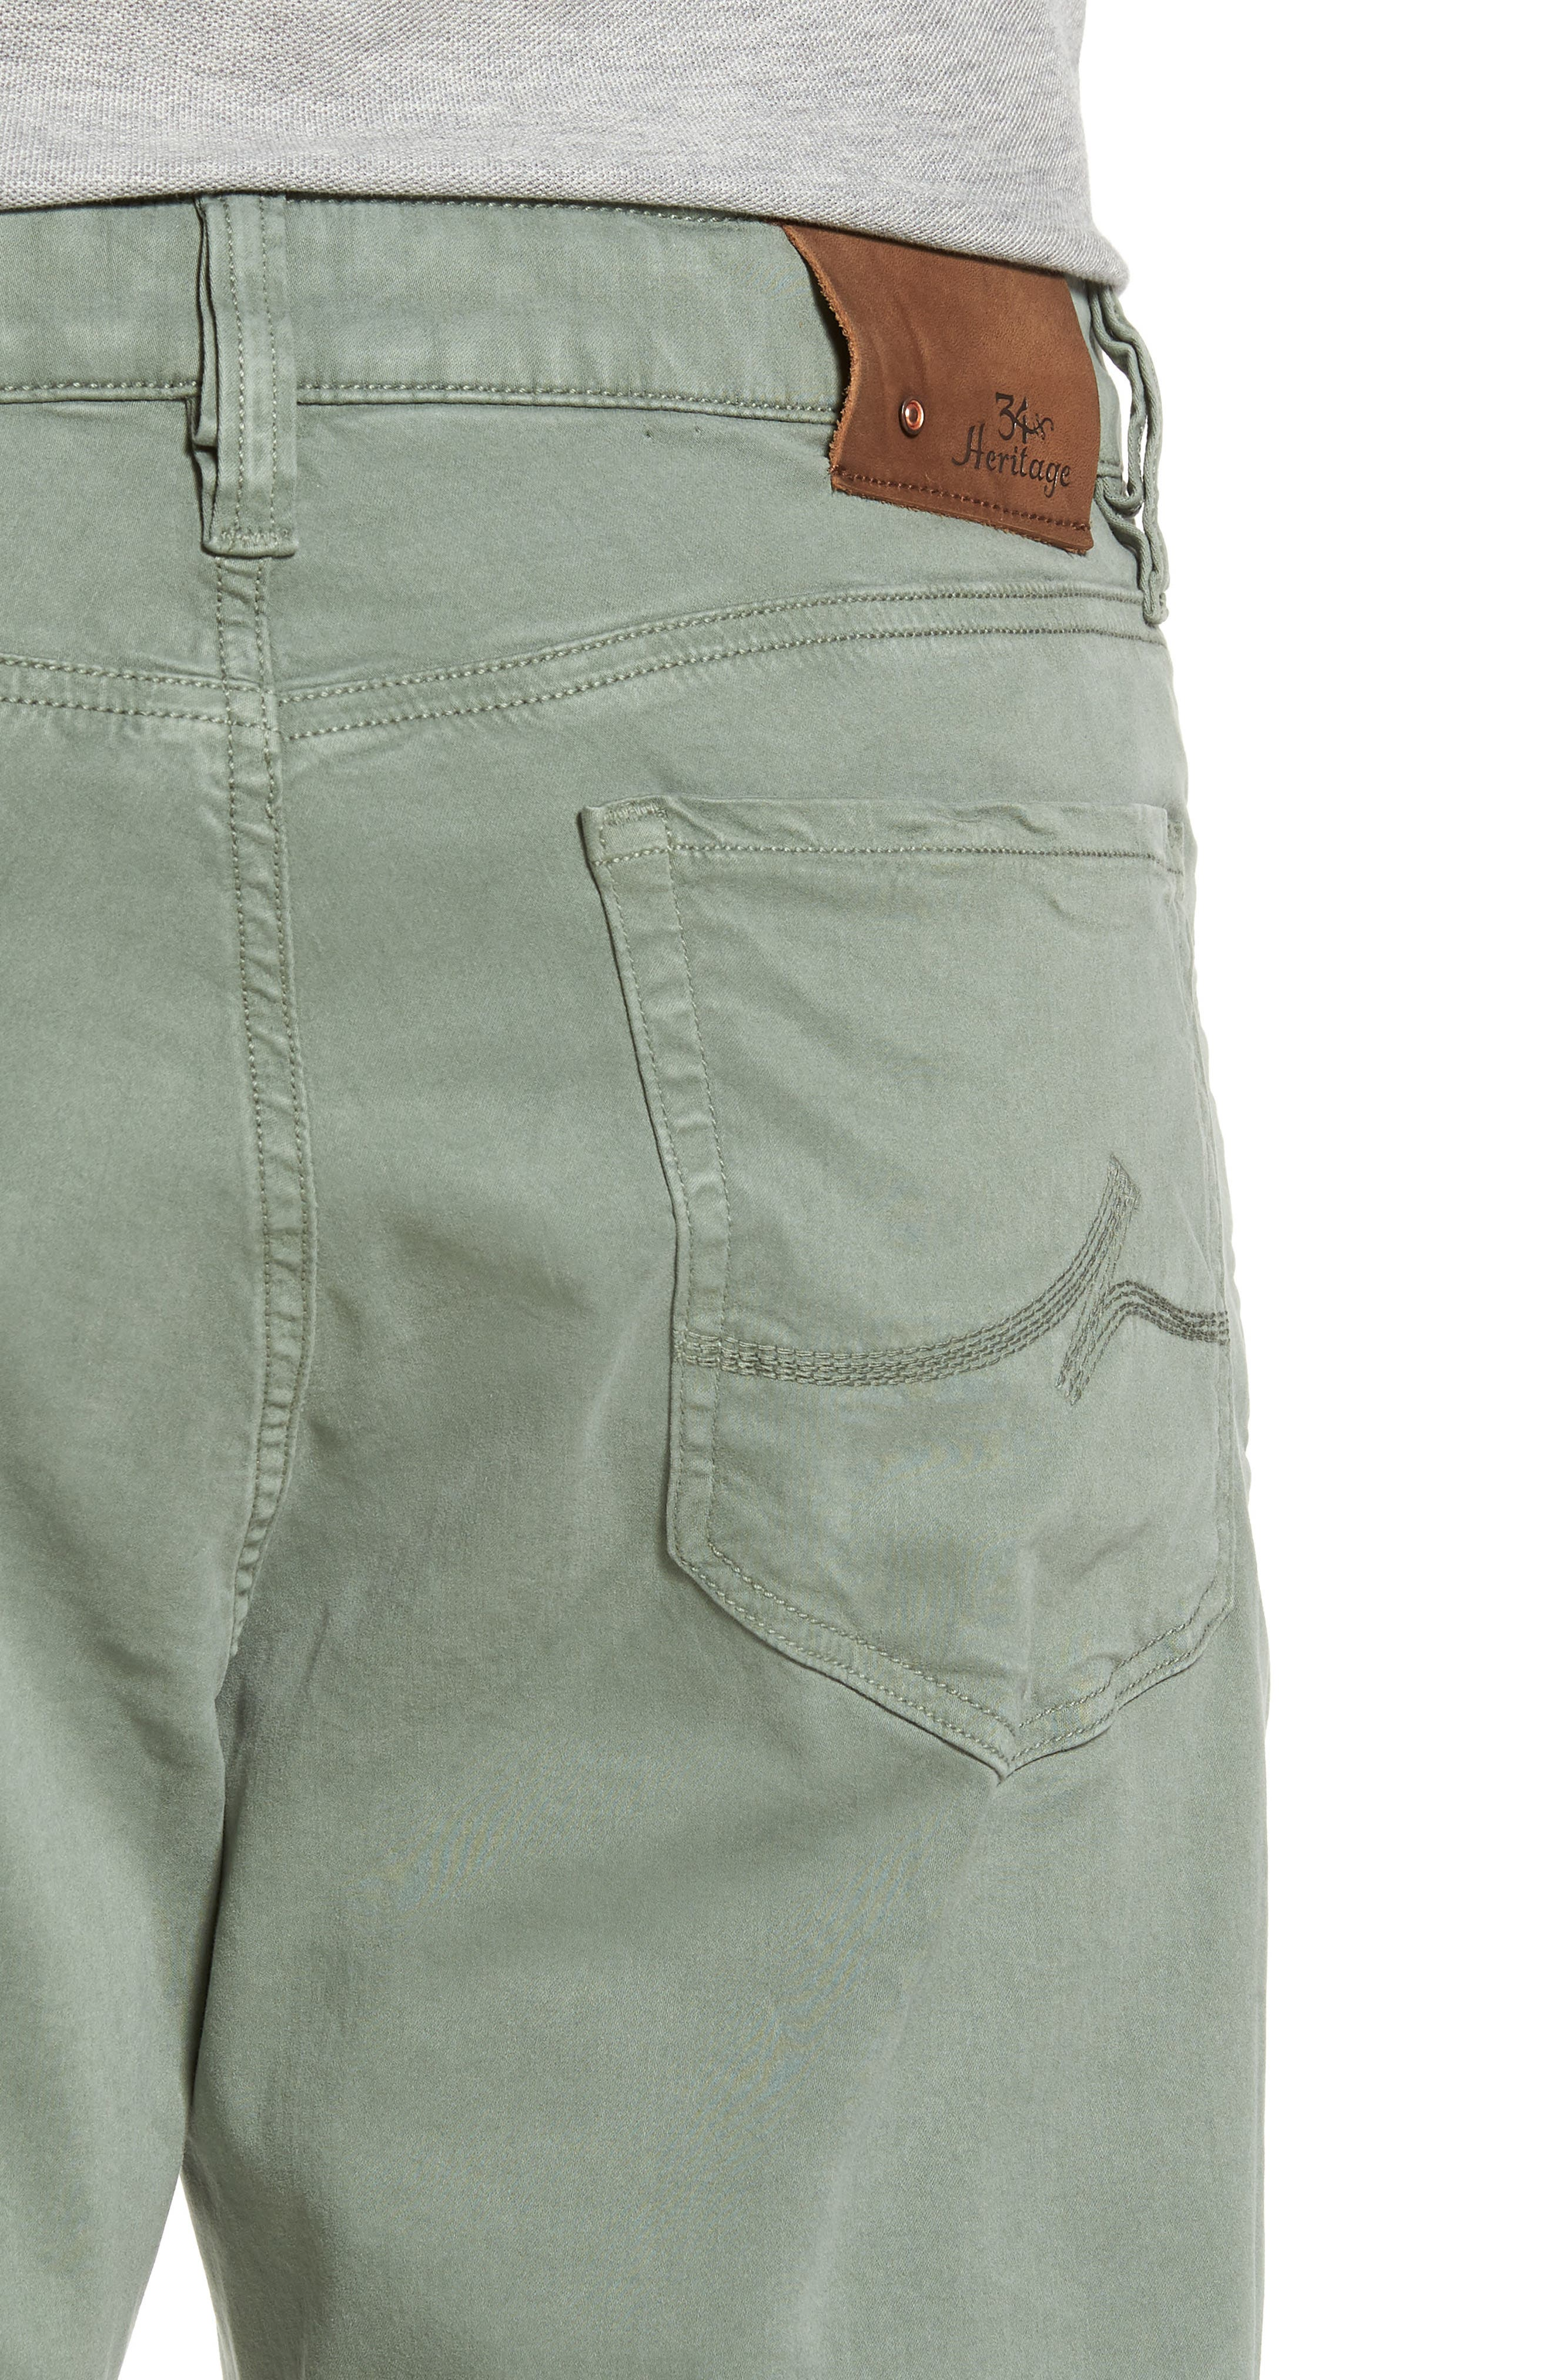 34 HERITAGE,                             Charisma Relaxed Fit Twill Pants,                             Alternate thumbnail 4, color,                             MOSS TWILL